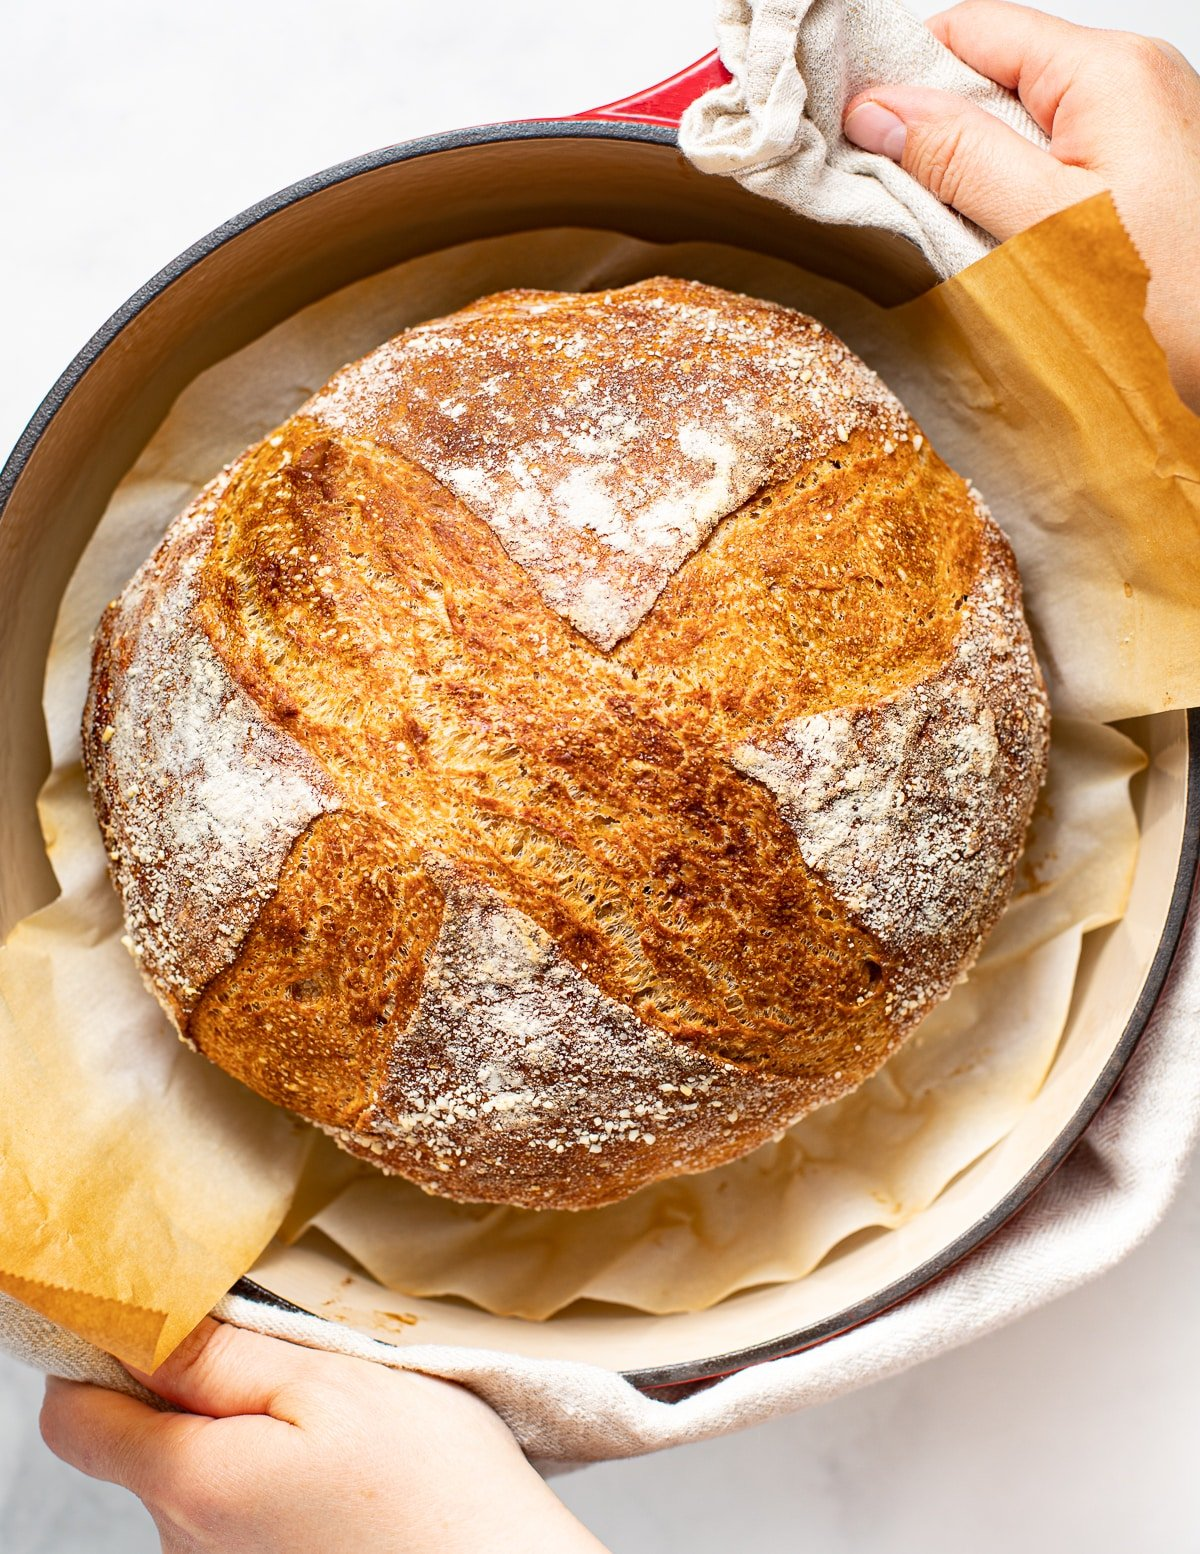 a loaf of crusty no knead sourdough bread in a red Dutch oven